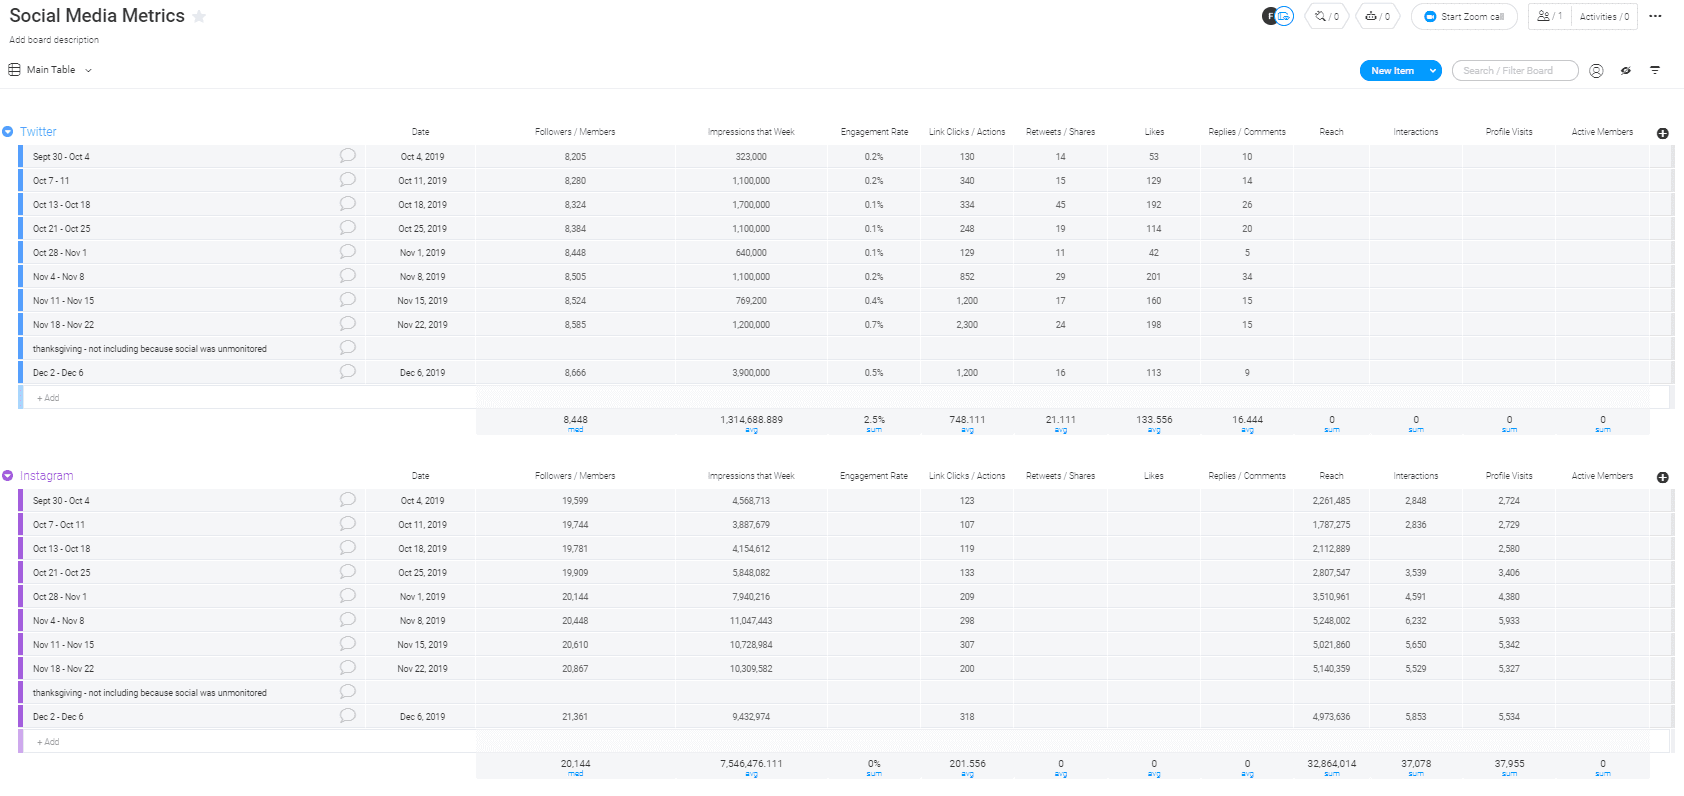 Spreadsheets on the dashboard